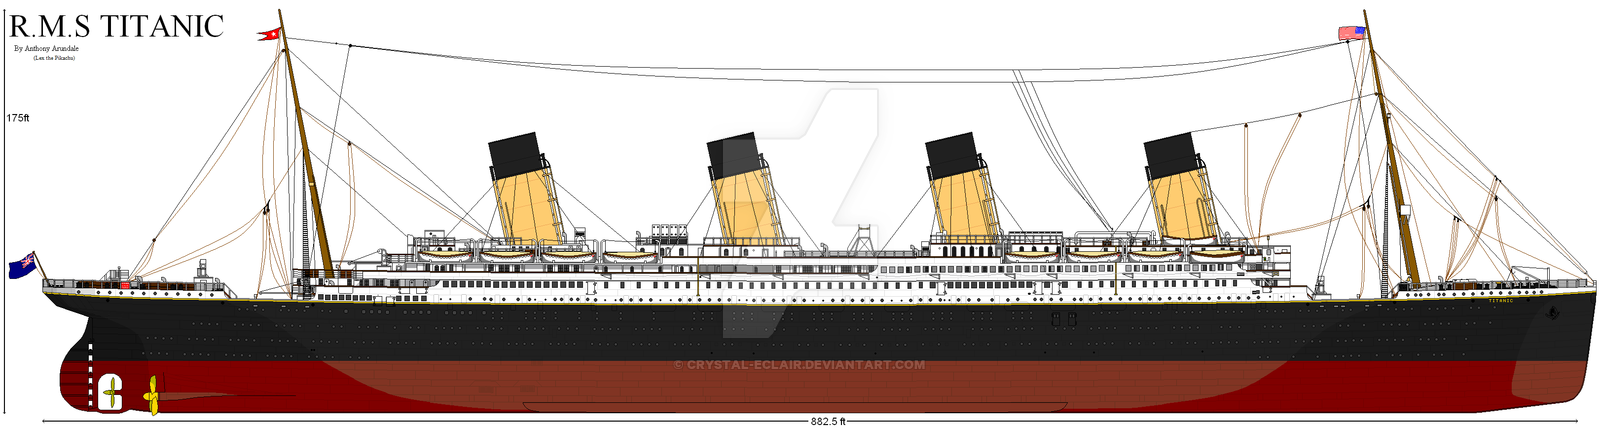 Drawn titanic side view :2010: RMS by TITANIC Eclair